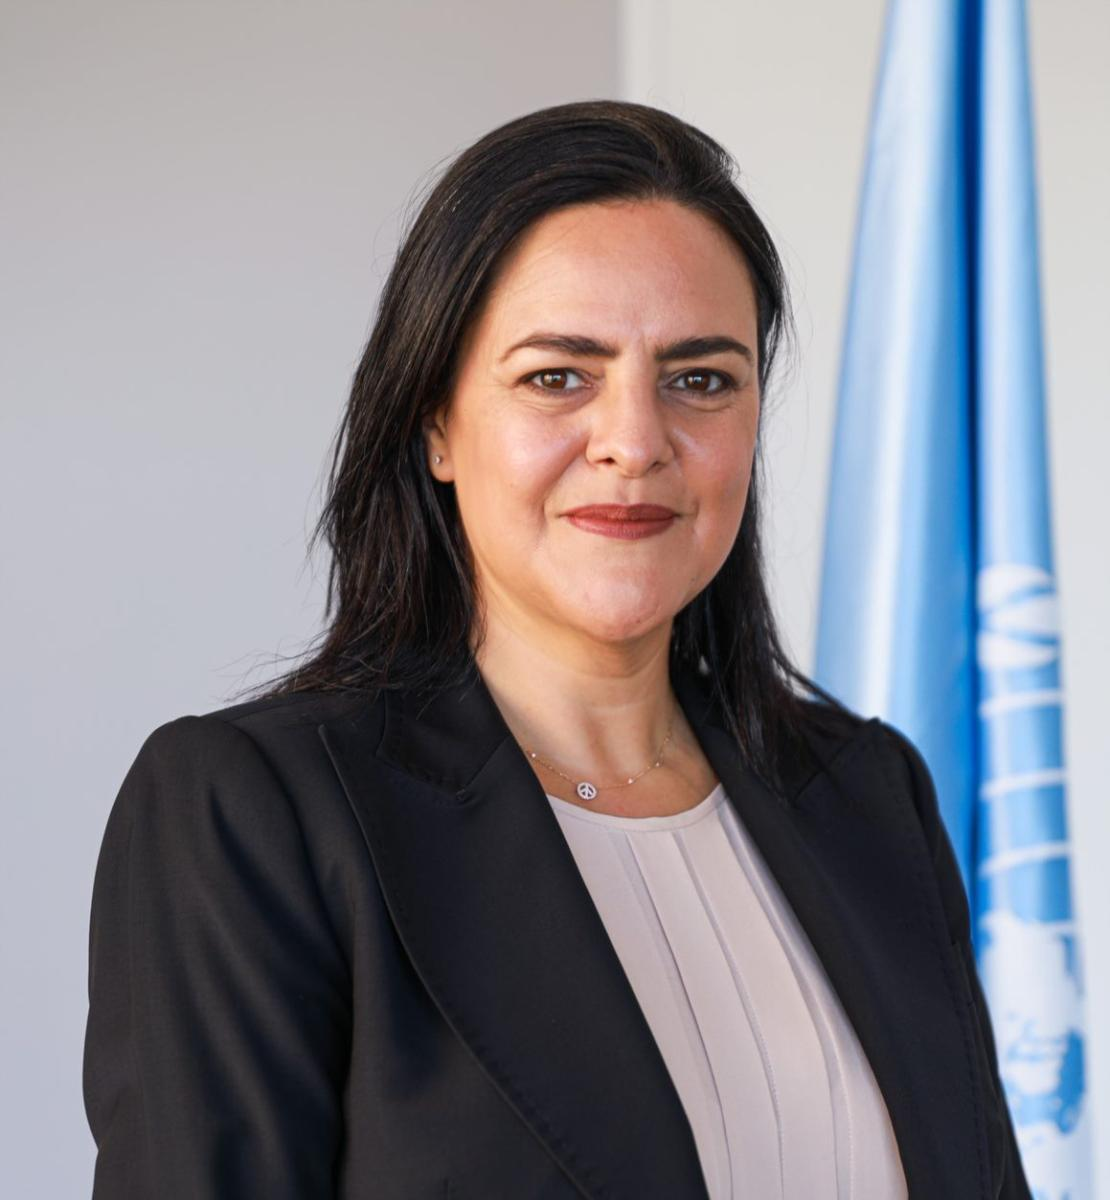 A woman in a black blazer looks straight into the camera with the United Nations flag behind her.